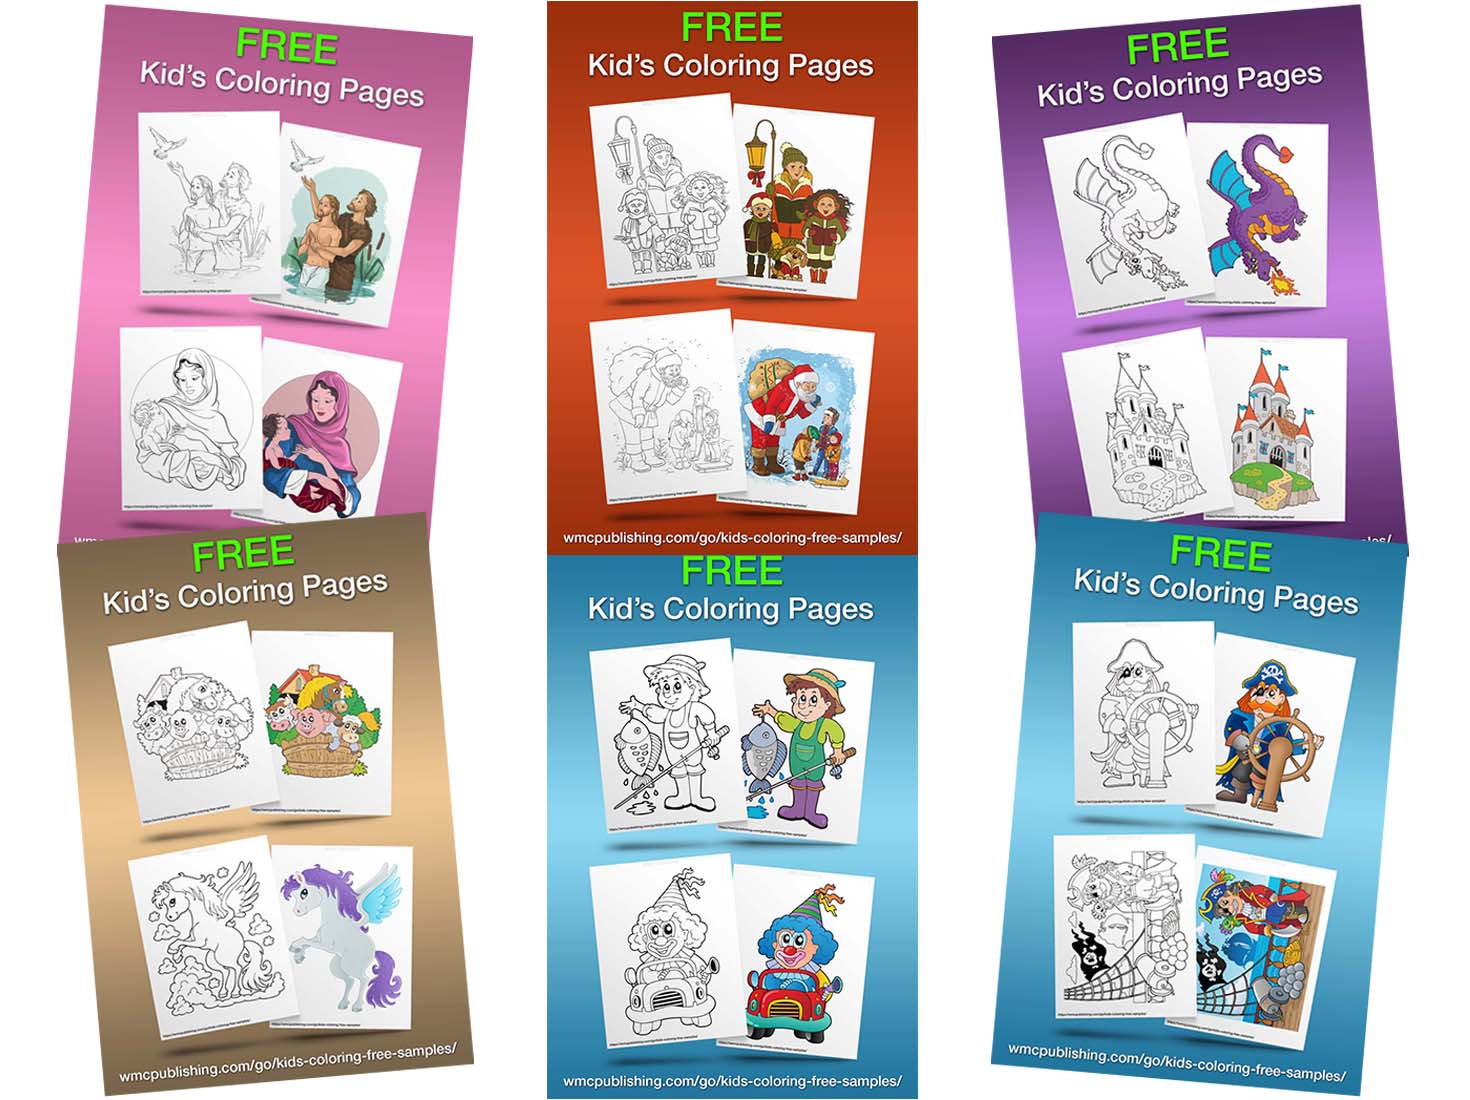 Free Kids' Coloring Pages